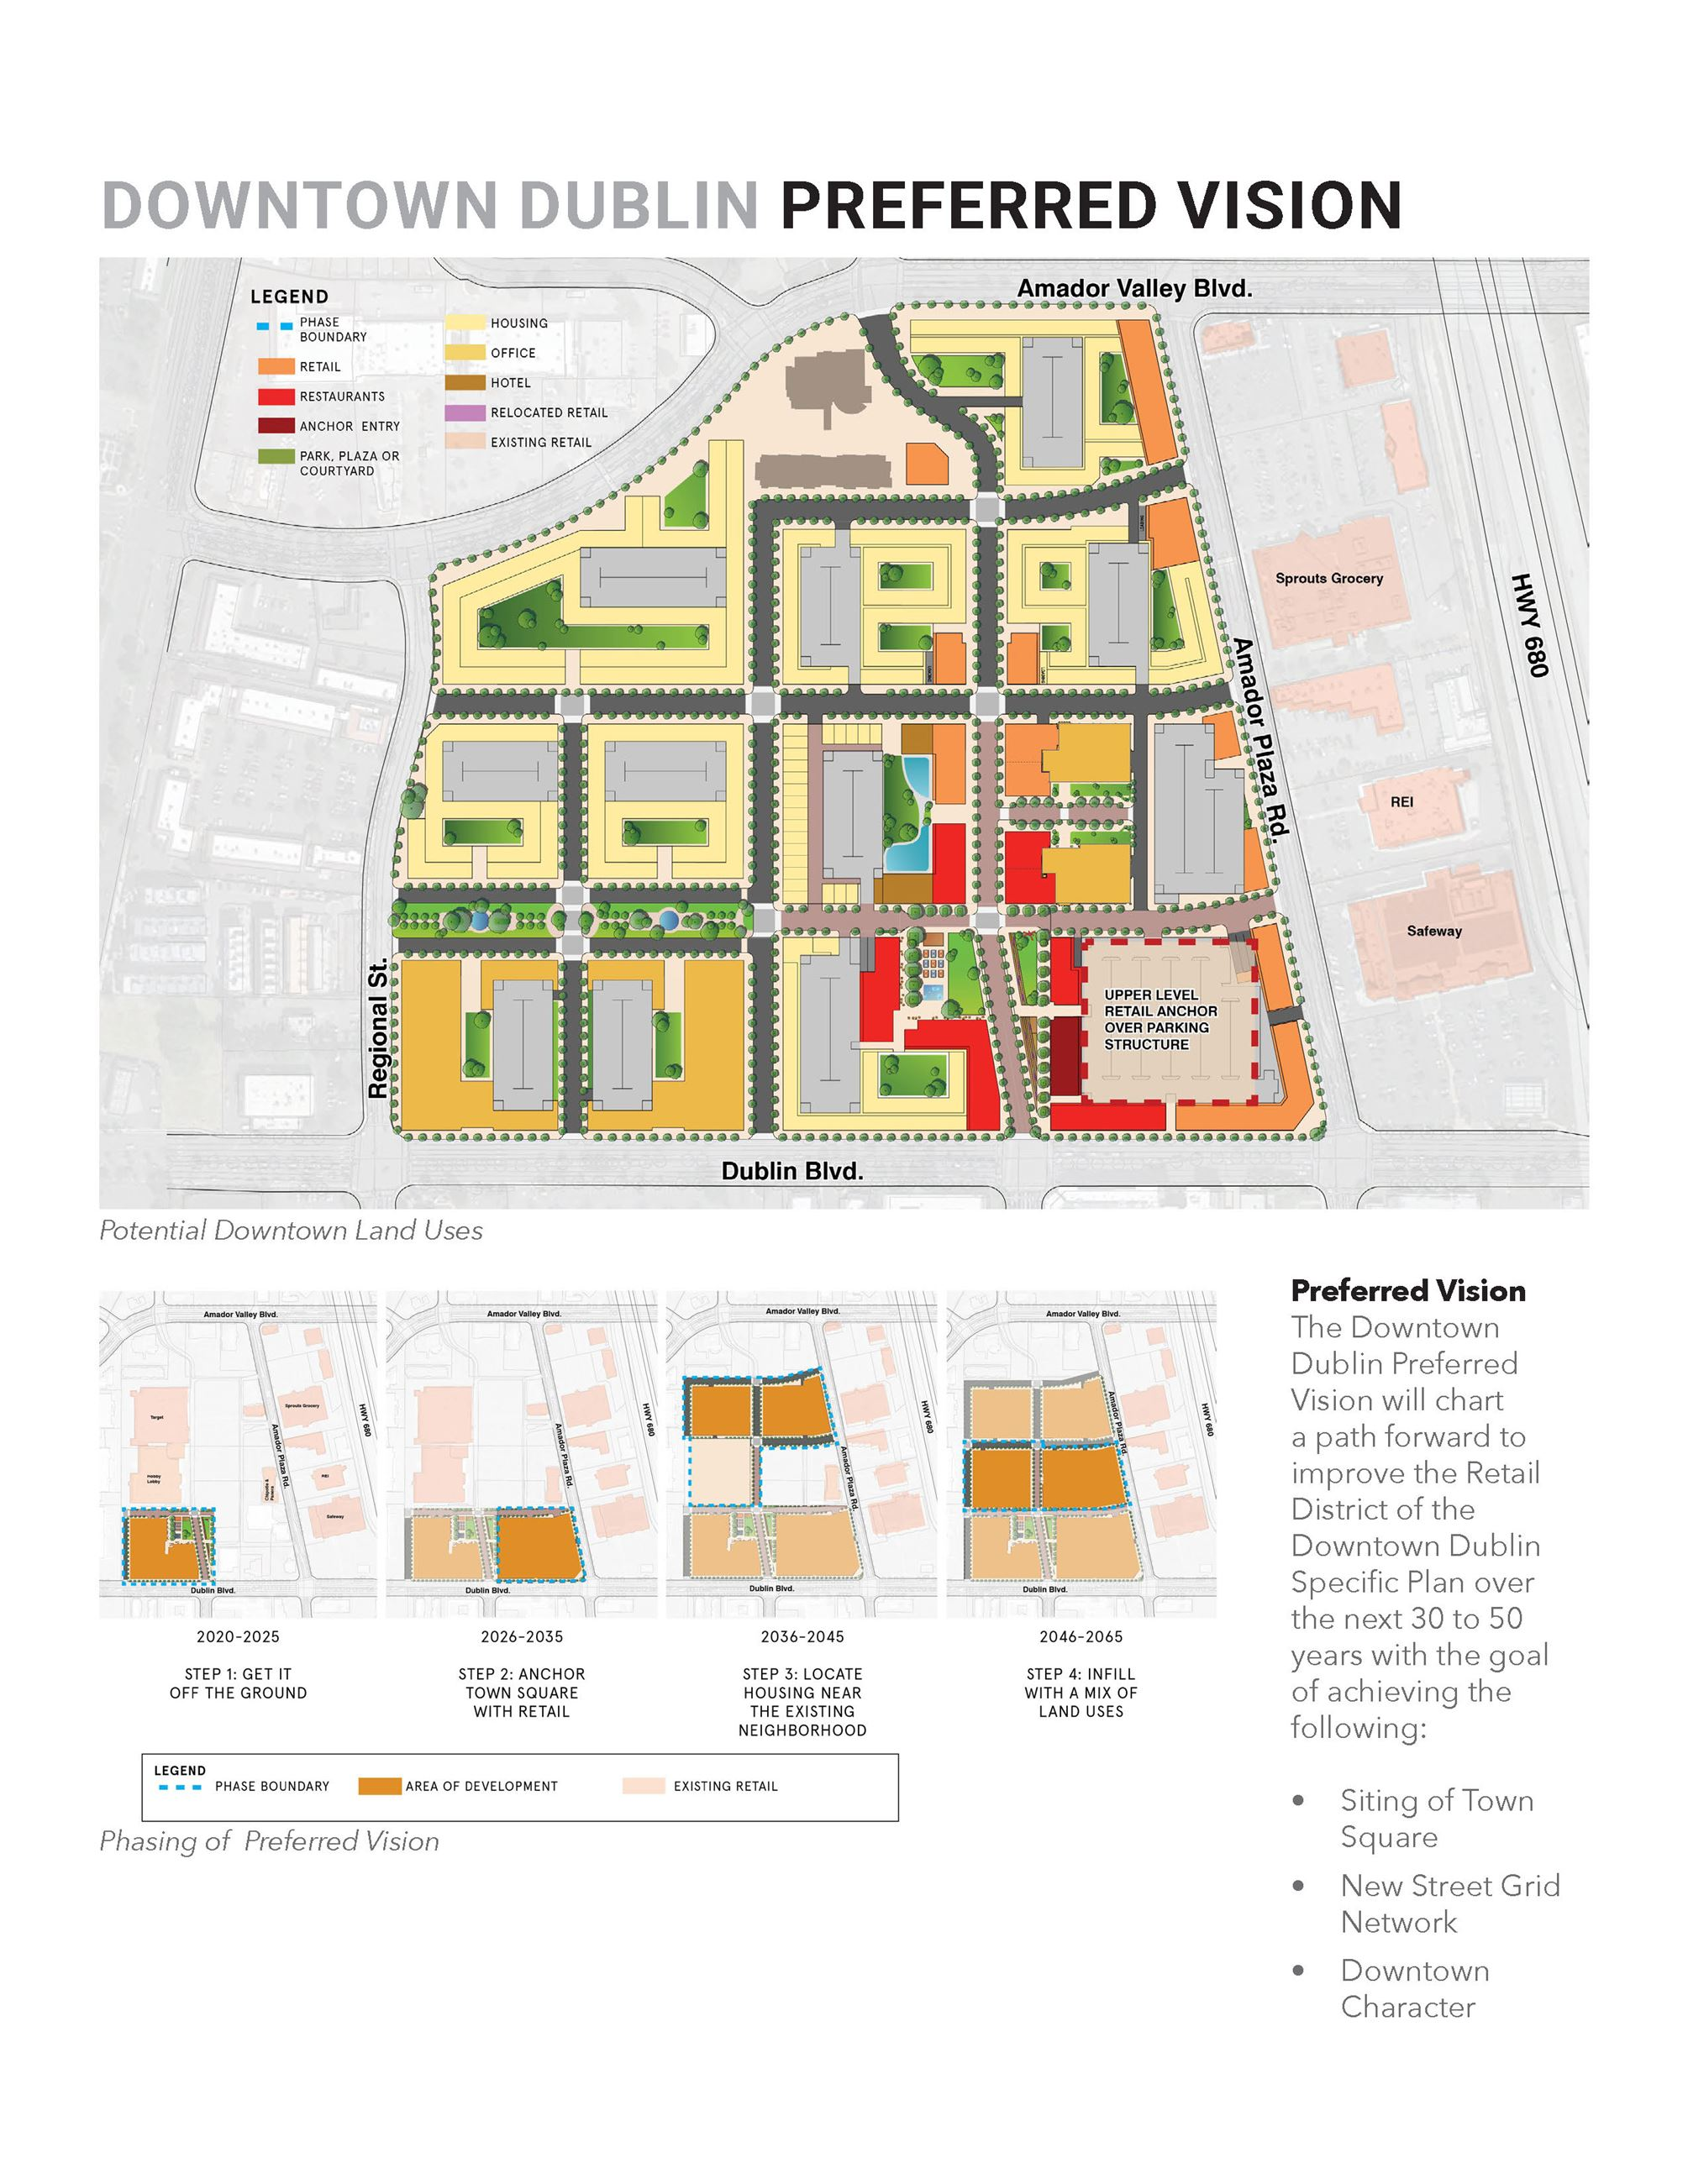 Adopted Downtown Dublin Preferred Vision - Rendering of Proposed Land Uses